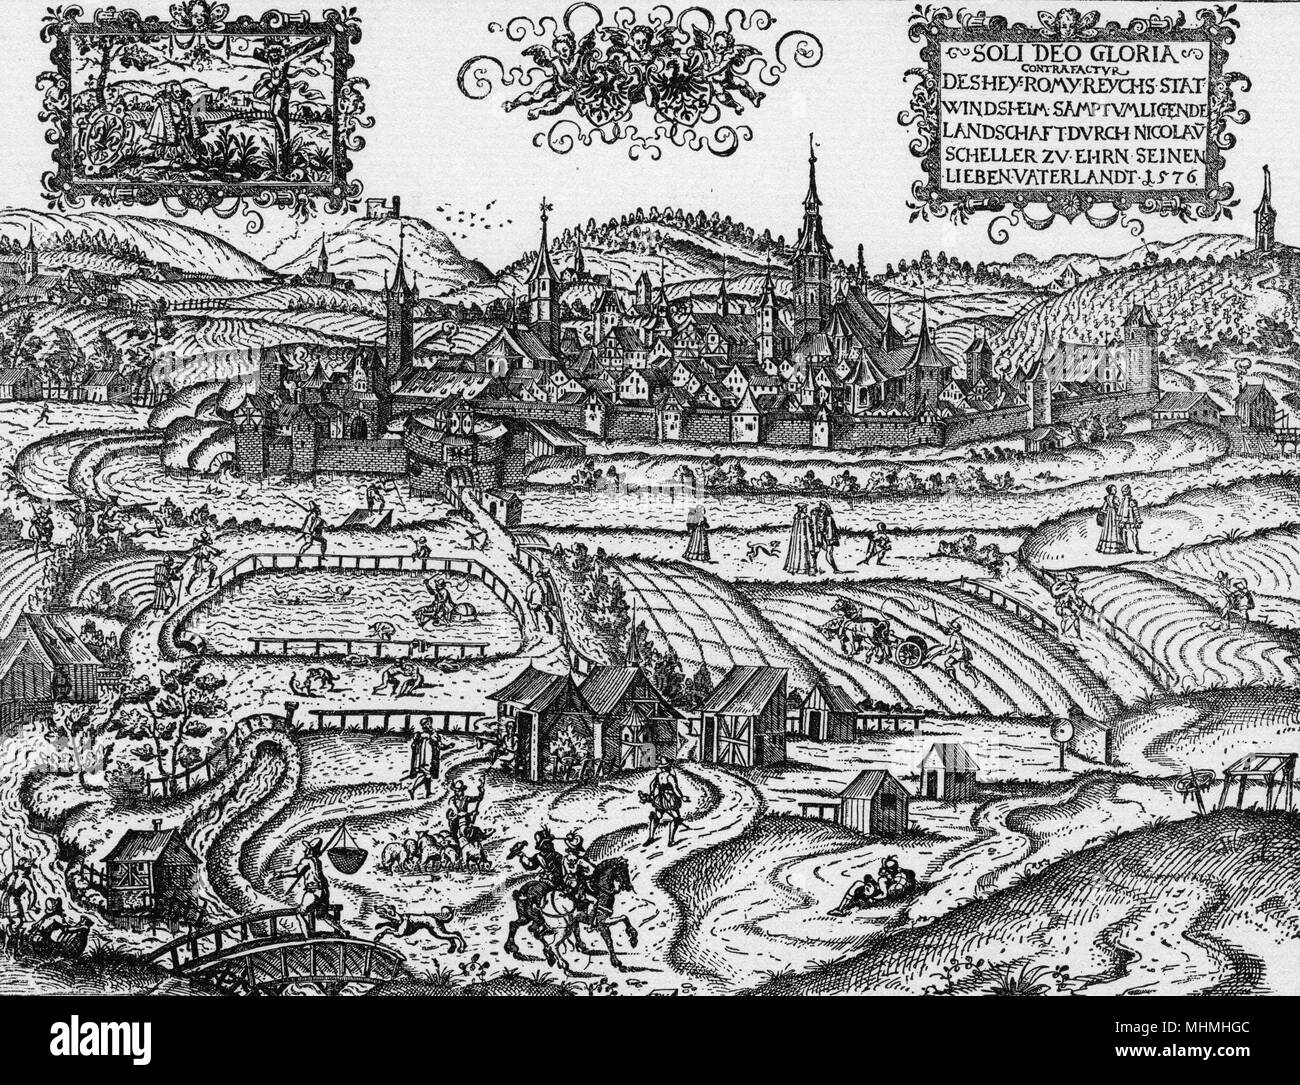 Windsheim, a typical German town       Date: 1576 - Stock Image